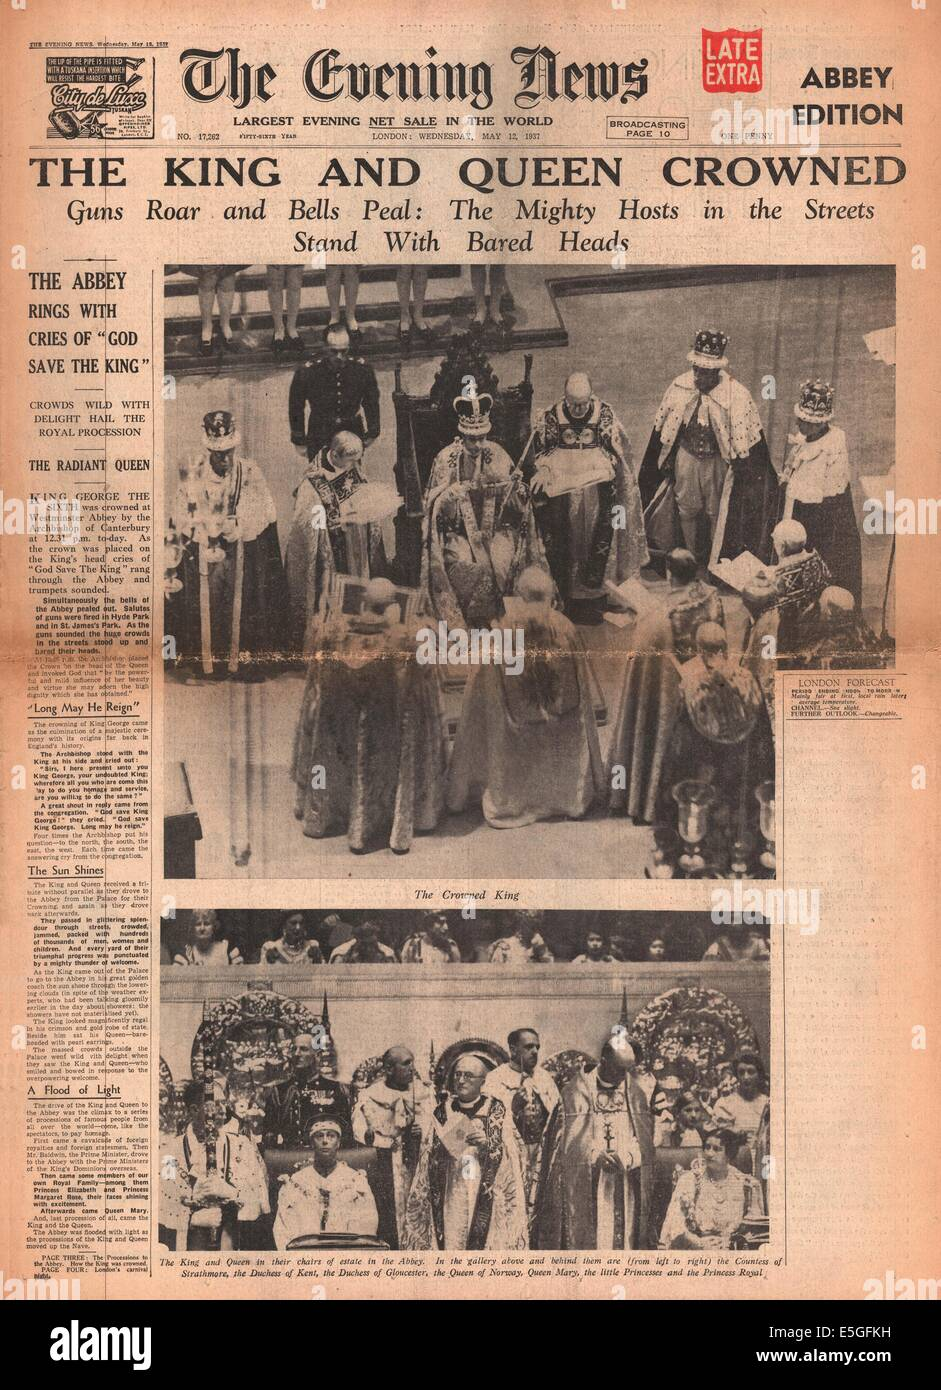 1937 The Evening News front page reporting coronation of